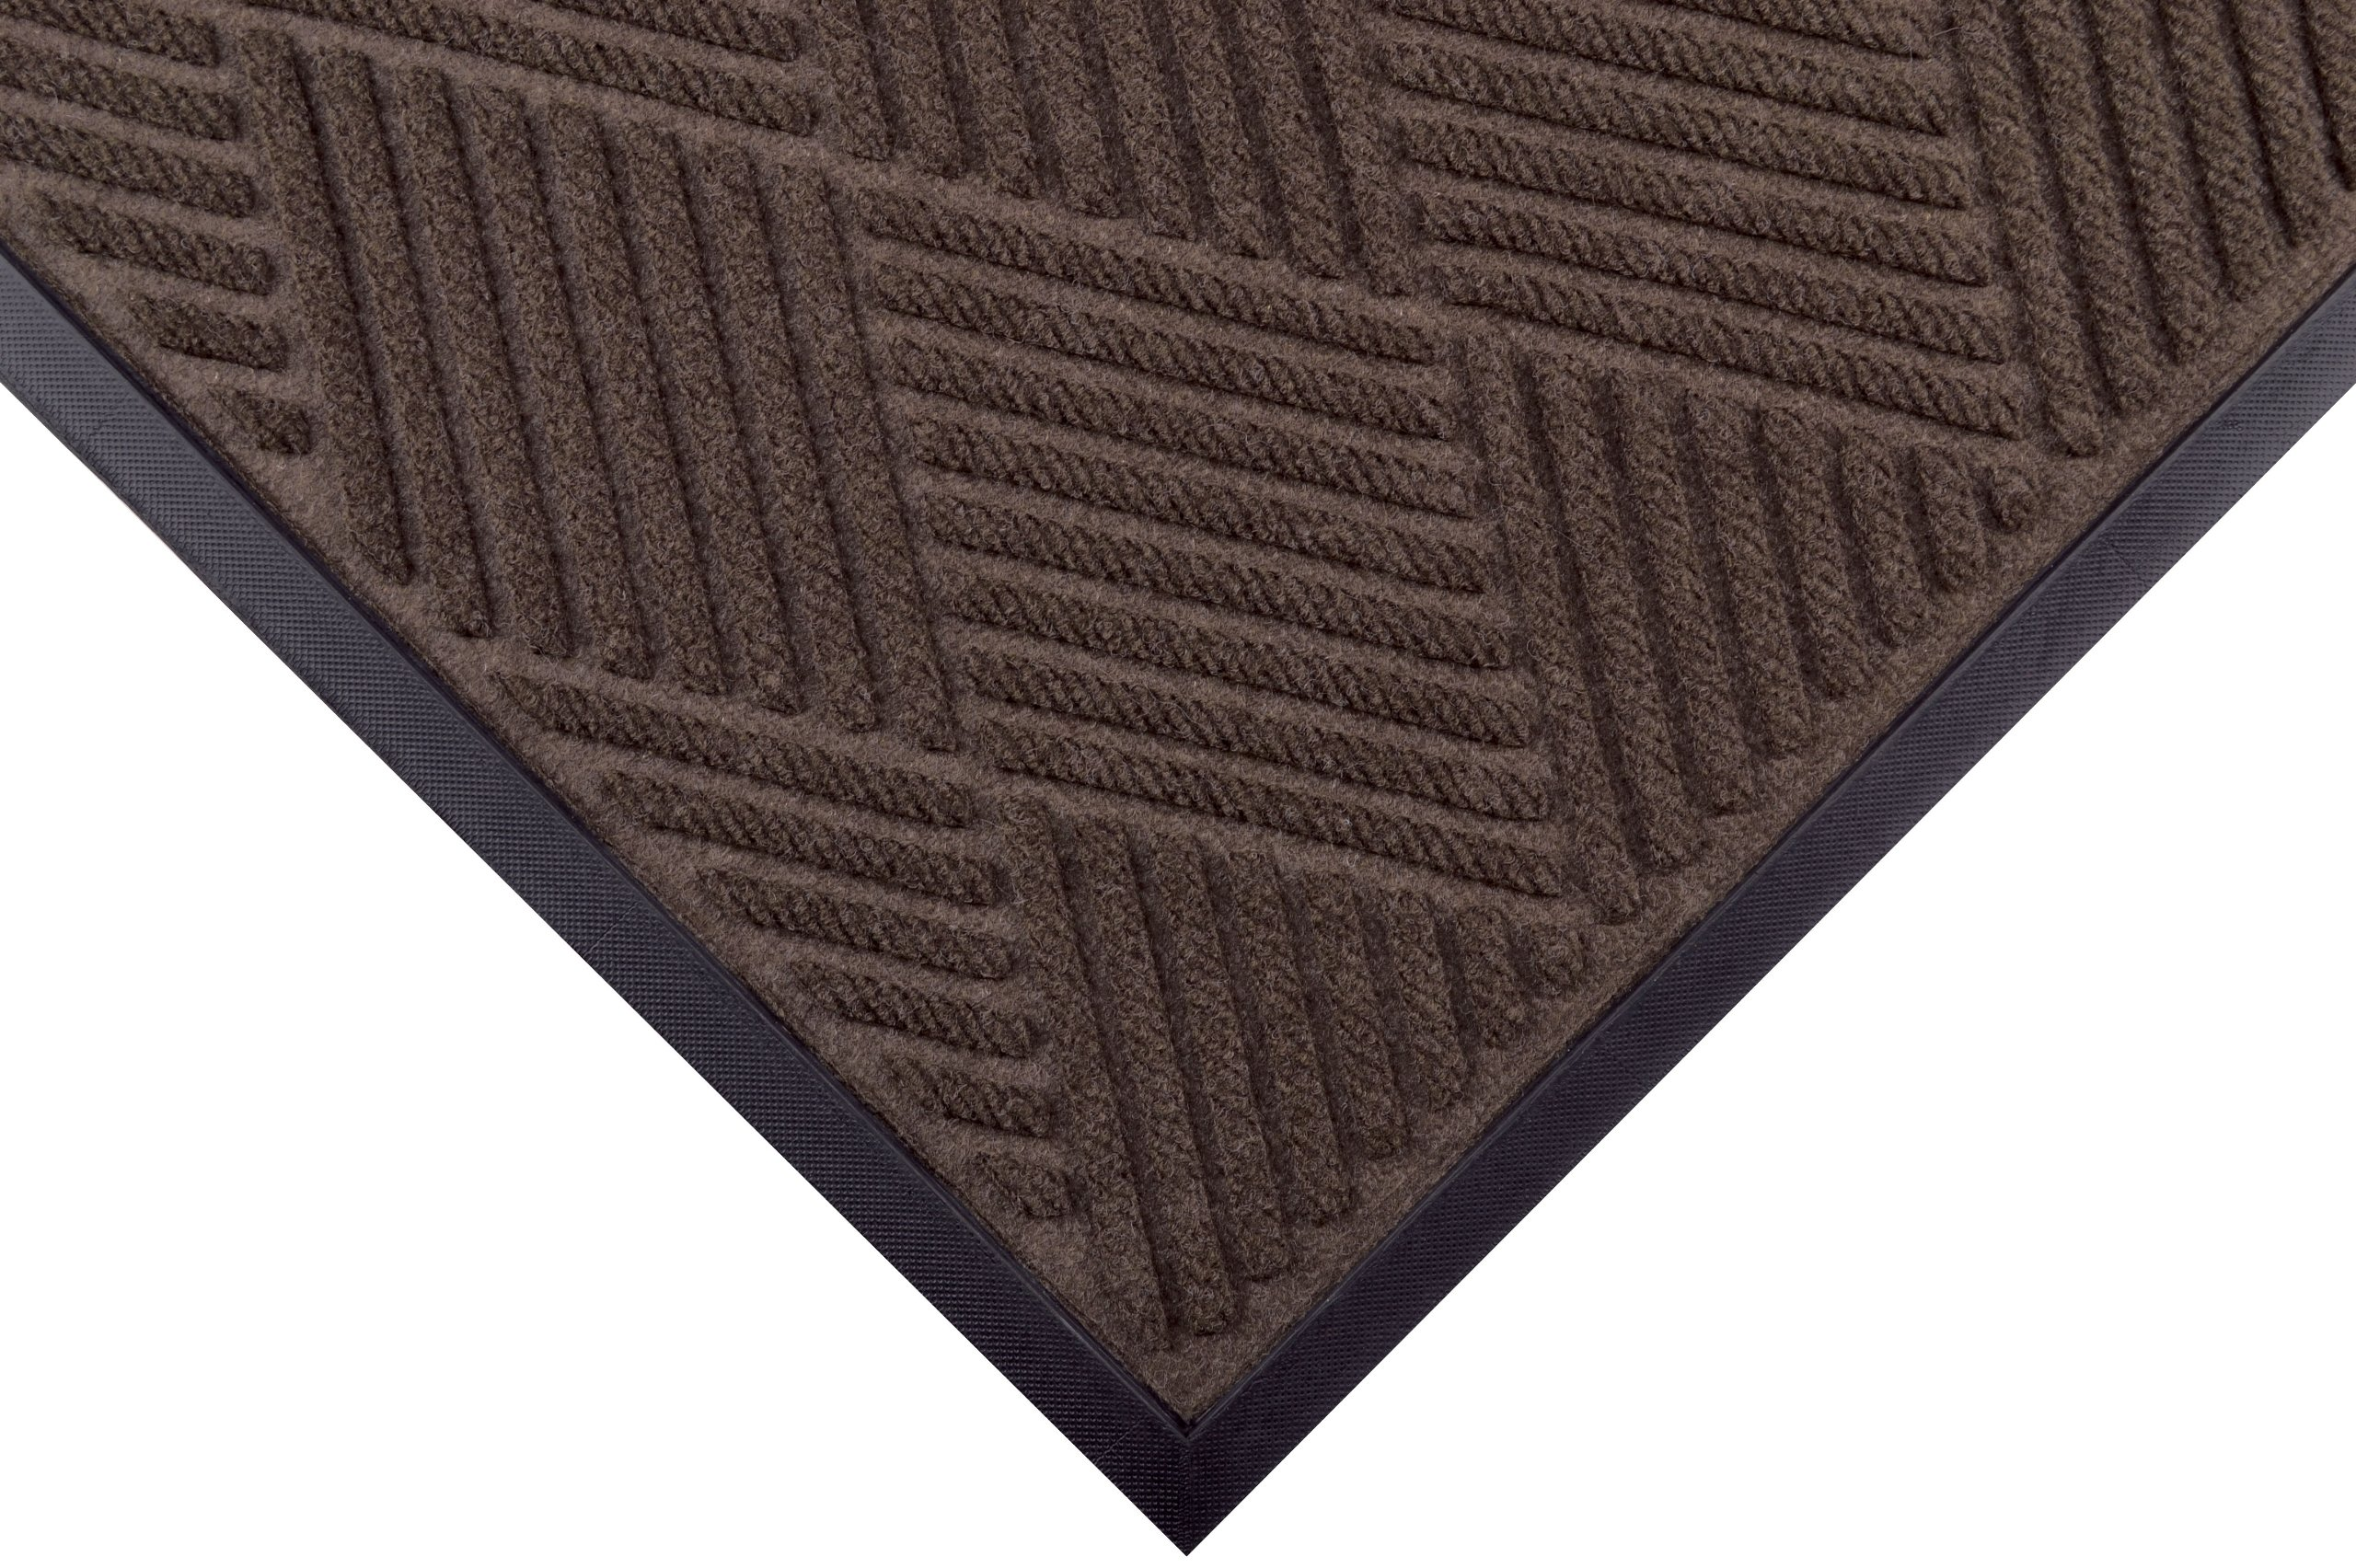 Notrax 168 Opus Entrance Mat, for Heavy Traffic Areas, 4' Width x 6' Length x 3/8'' Thickness, Brown